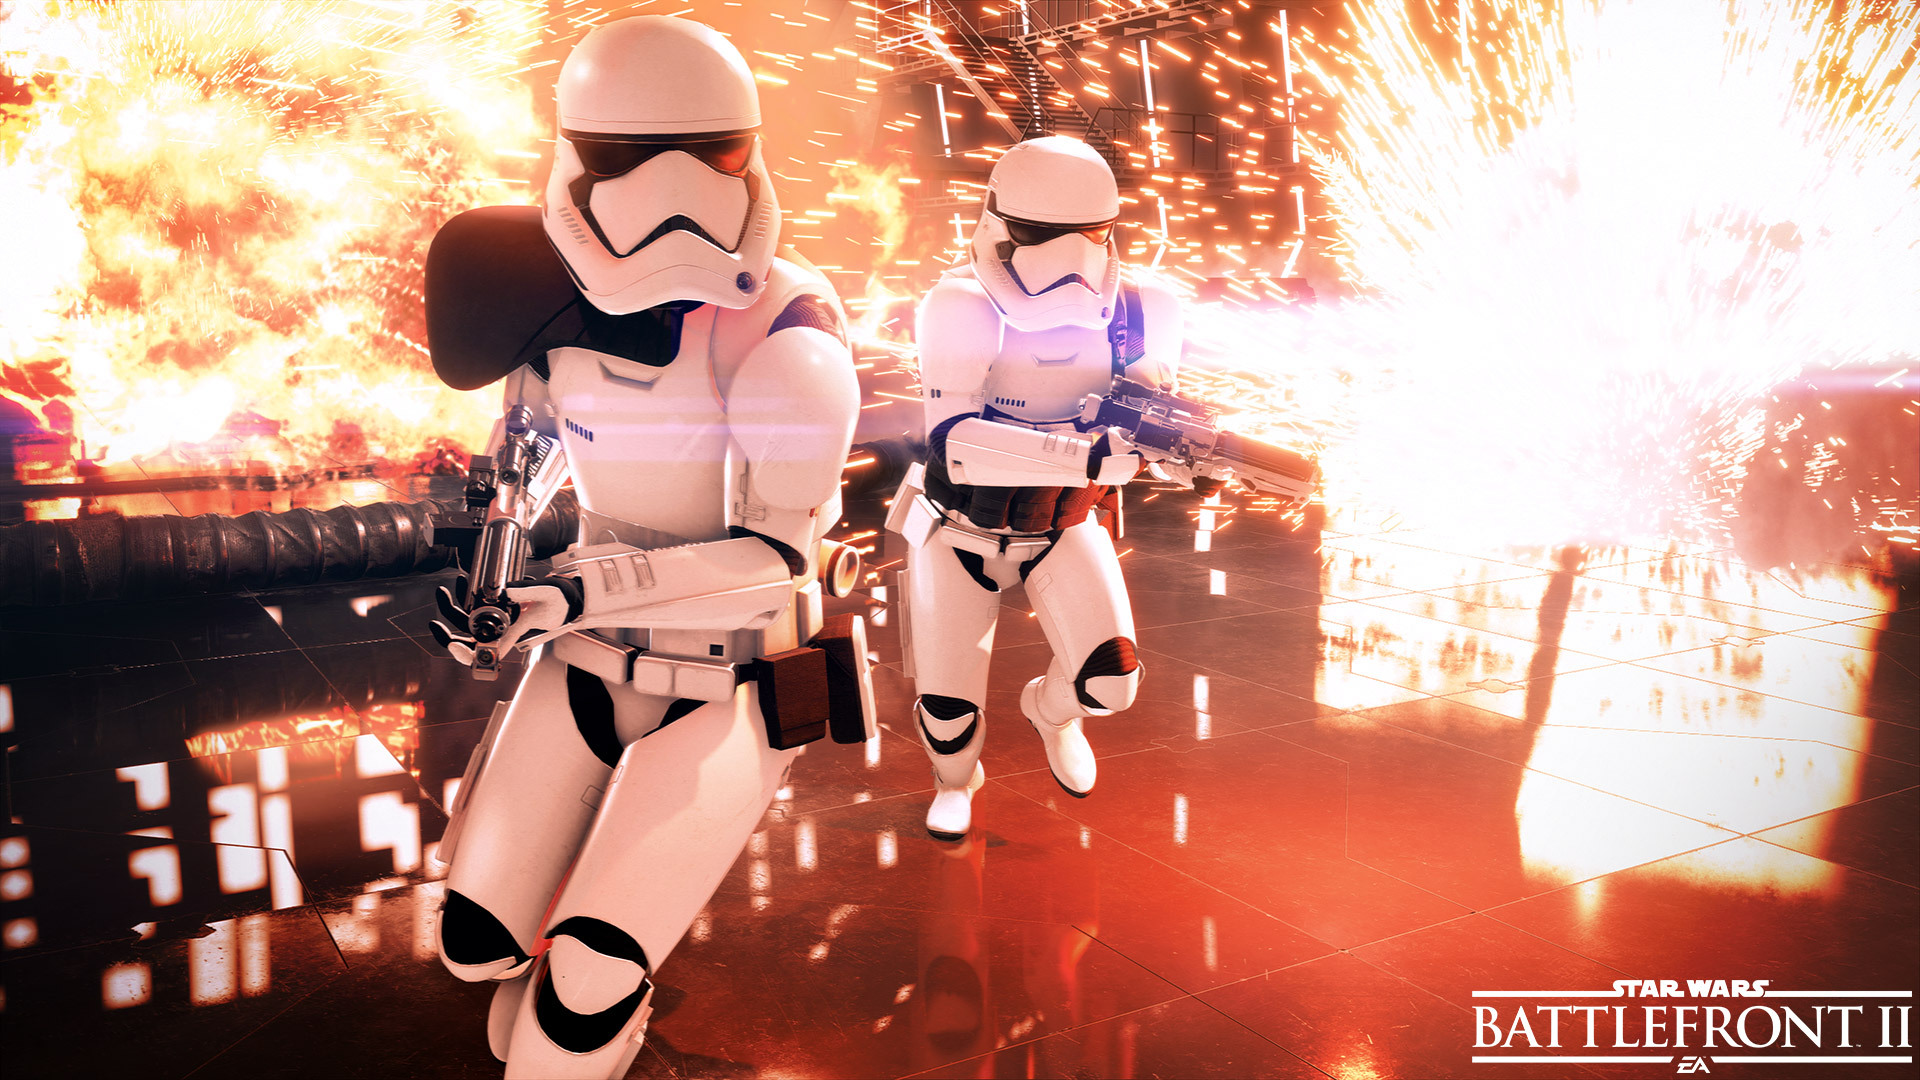 star-wars-battlefront-ii-2017-1-pic.jpg